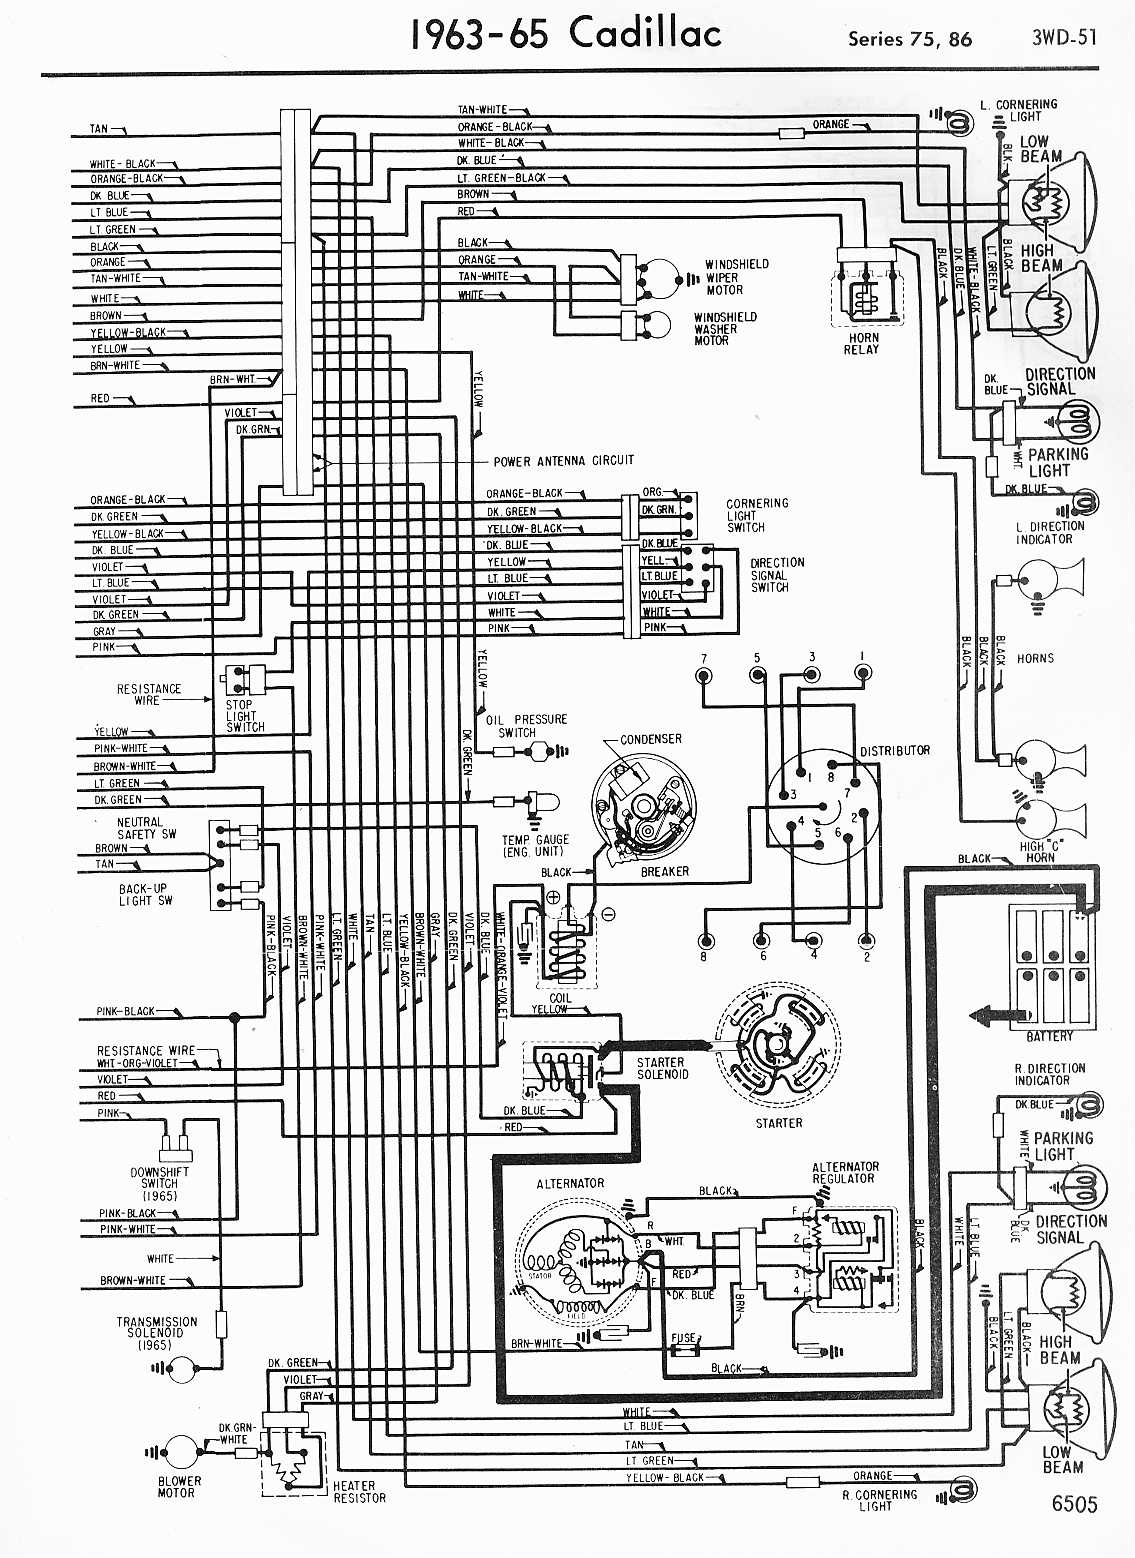 cadillac wiring diagram enthusiast wiring diagrams u2022 rh rasalibre co 2001 Camaro Ignition Switch Diagram Wire Diagram On 93 Chevy 5.7L Ignition